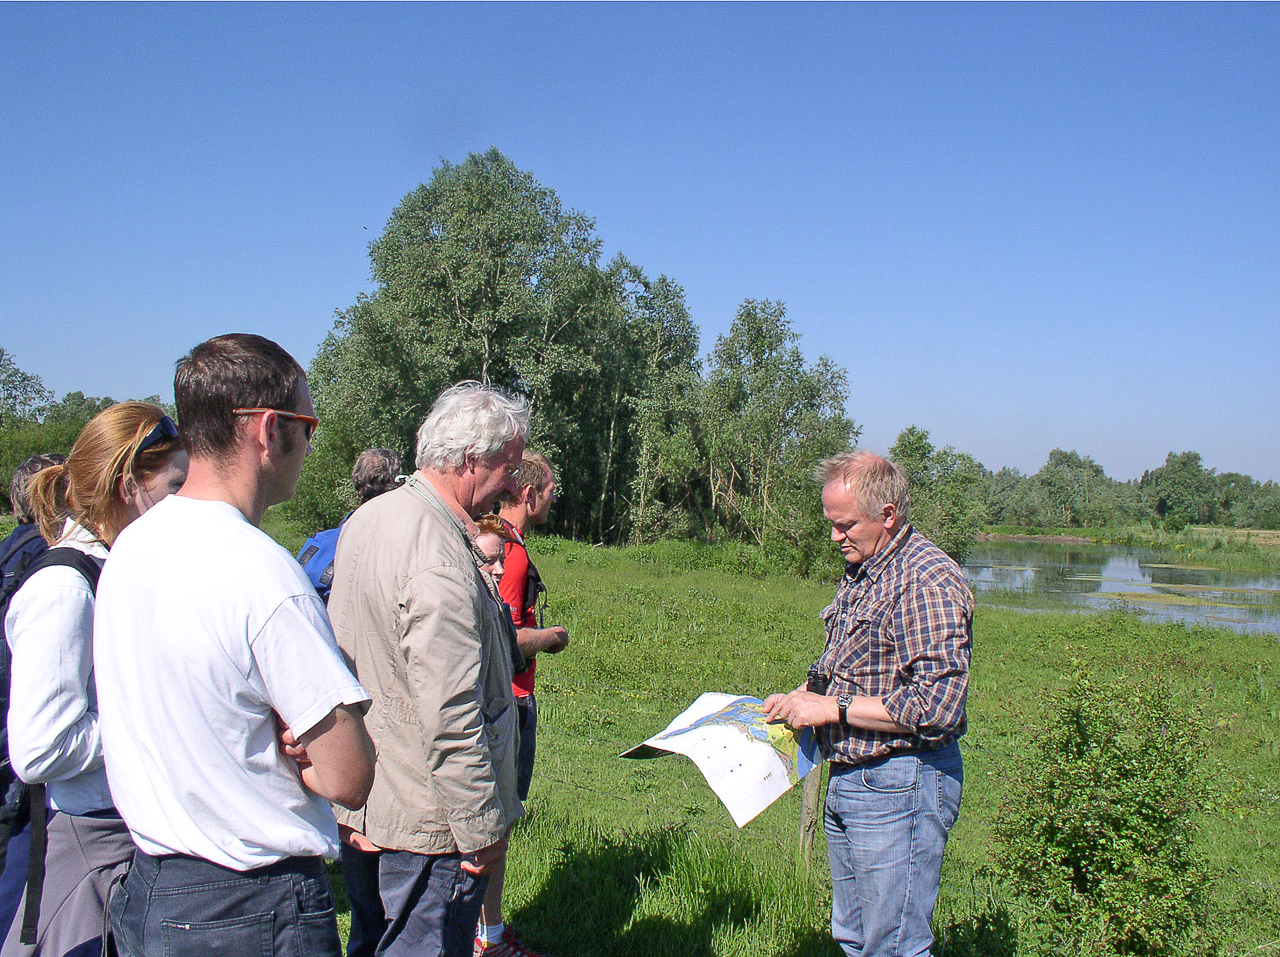 Johan Bekhuis of Ark introduces the Gelderse Poort wood pasture